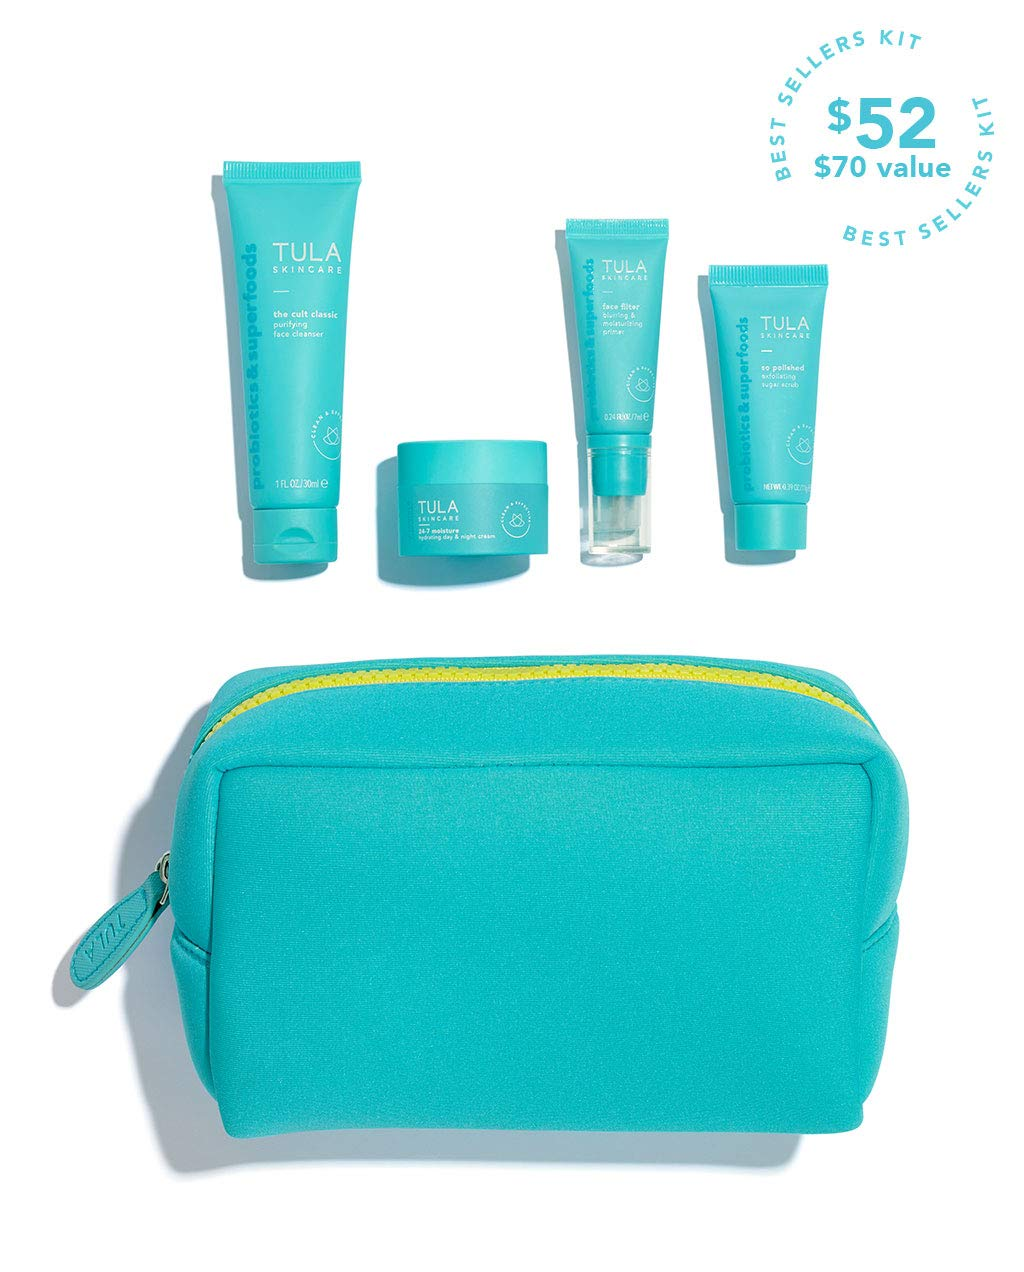 TULA Probiotic Skin Care On the Go Best Sellers Travel Kit - Reviews